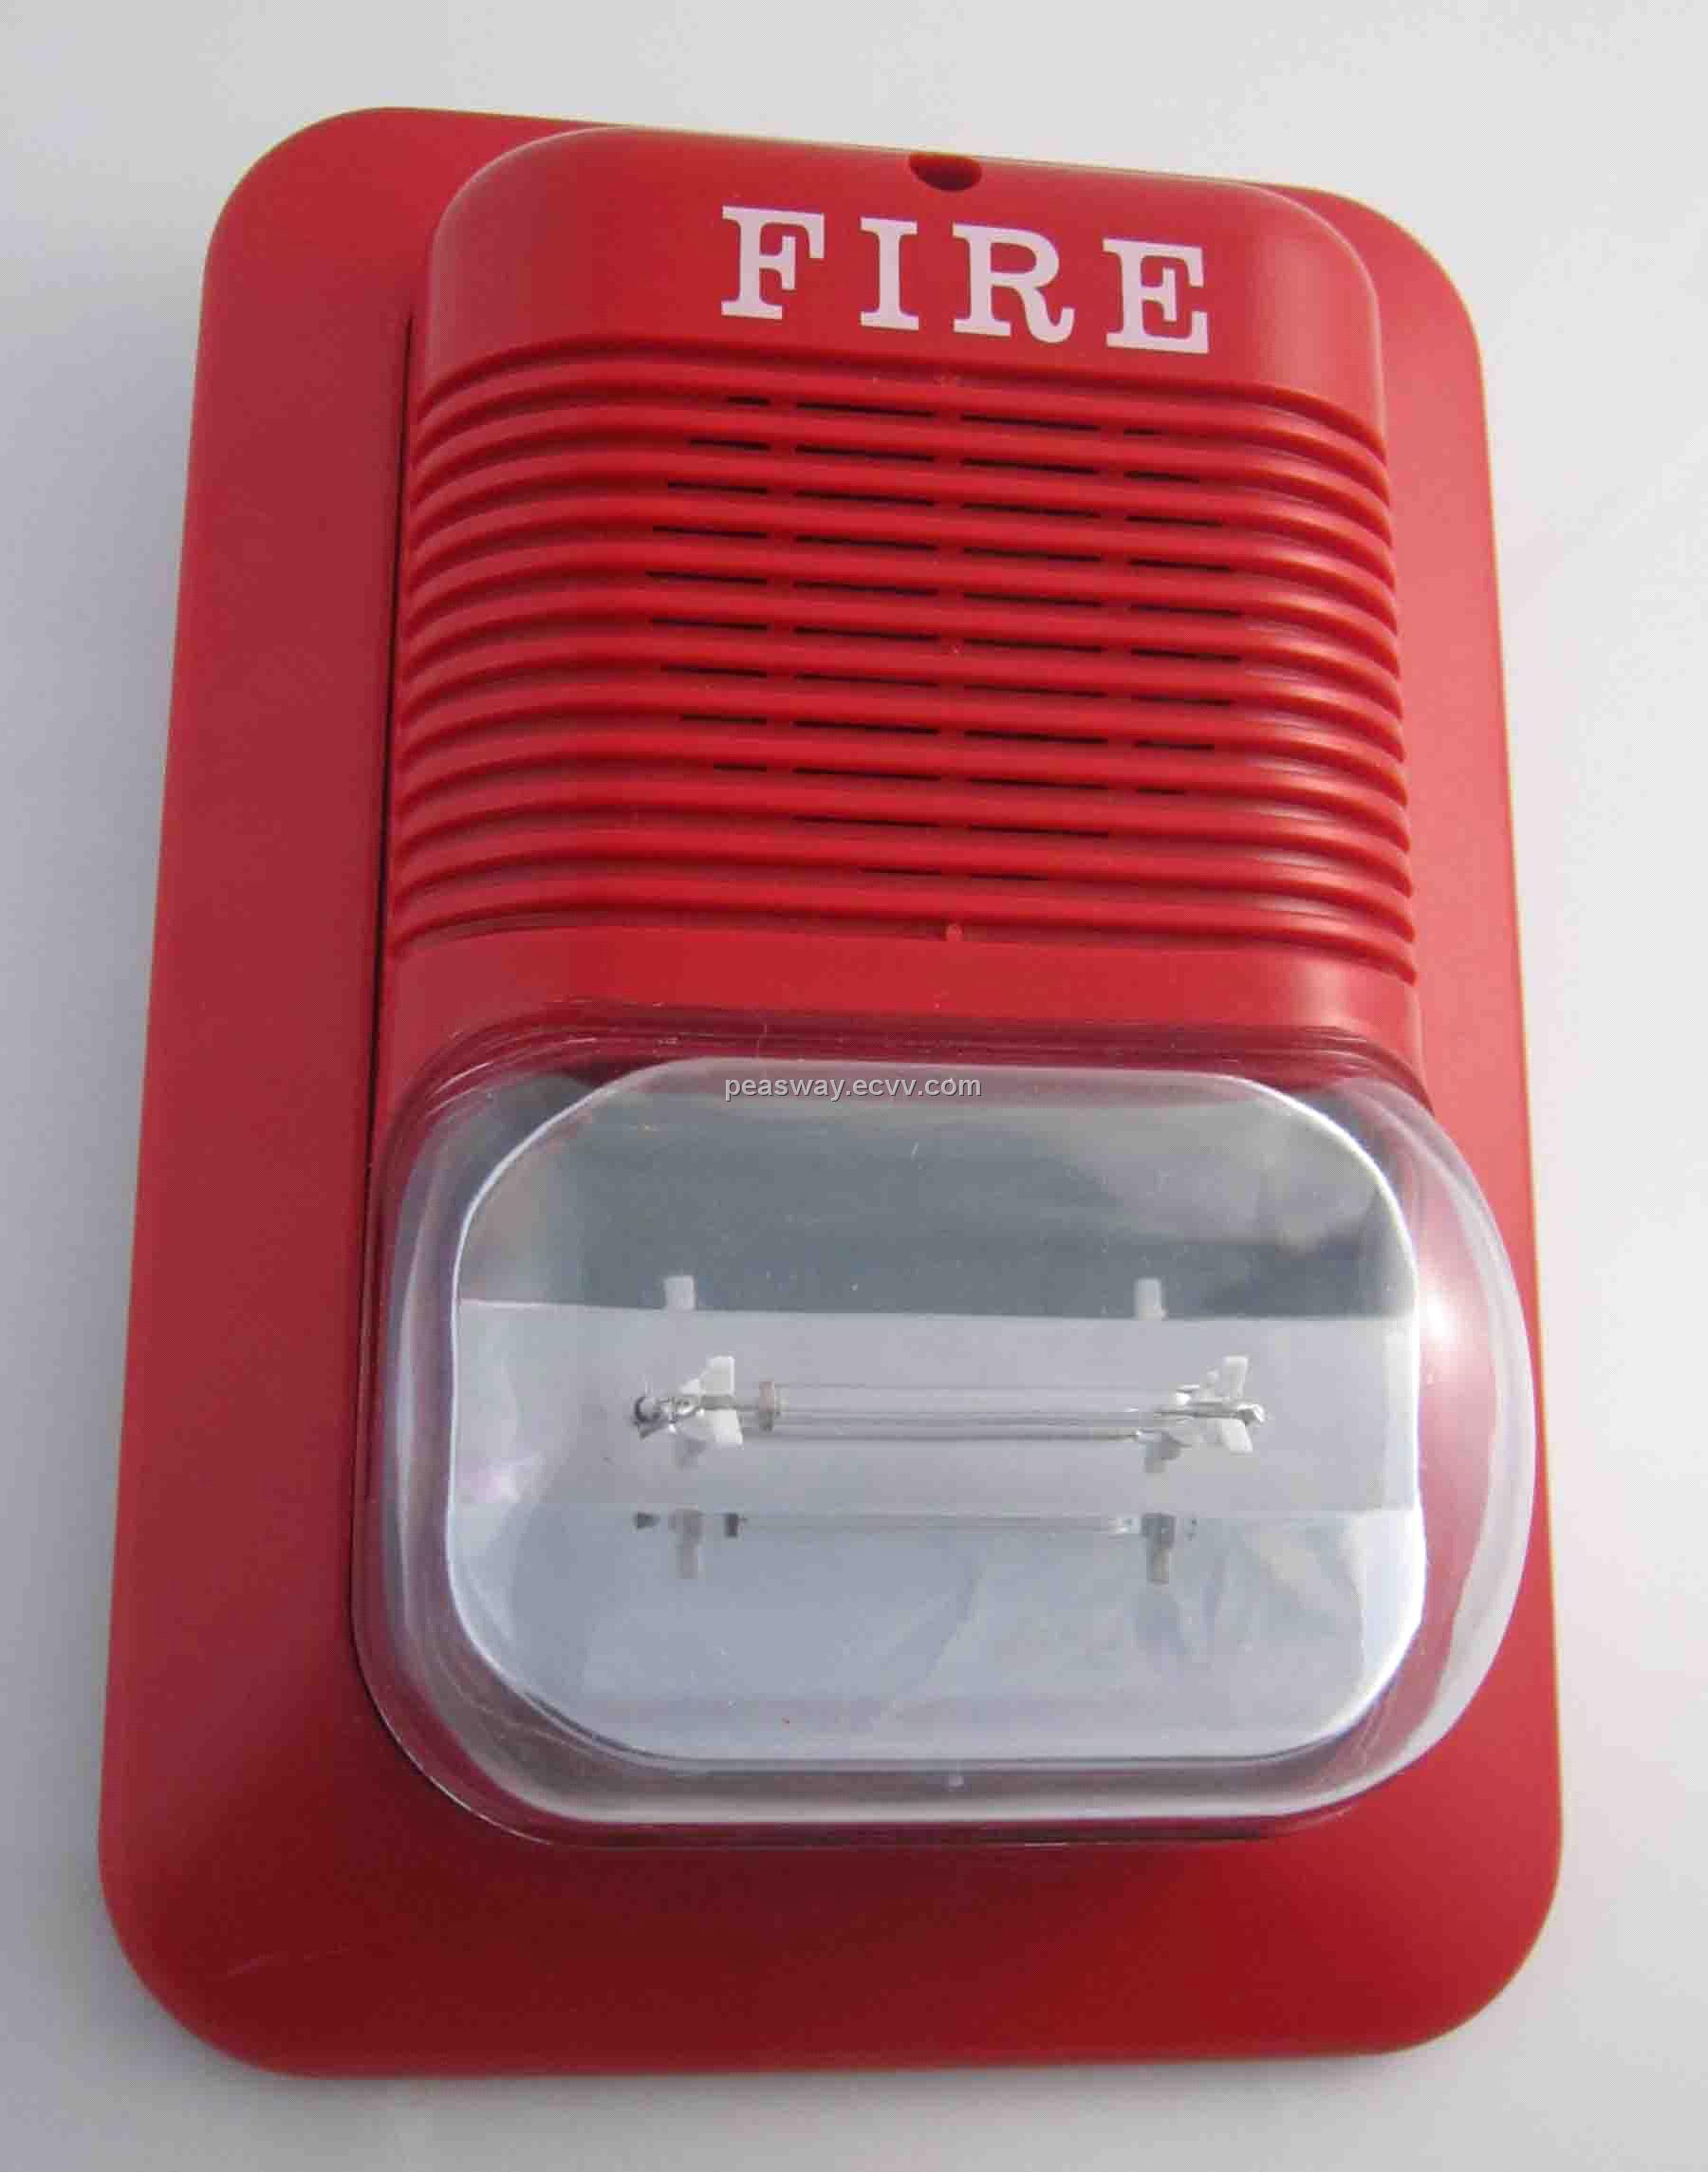 2970485 on fire alarm horn strobe lights